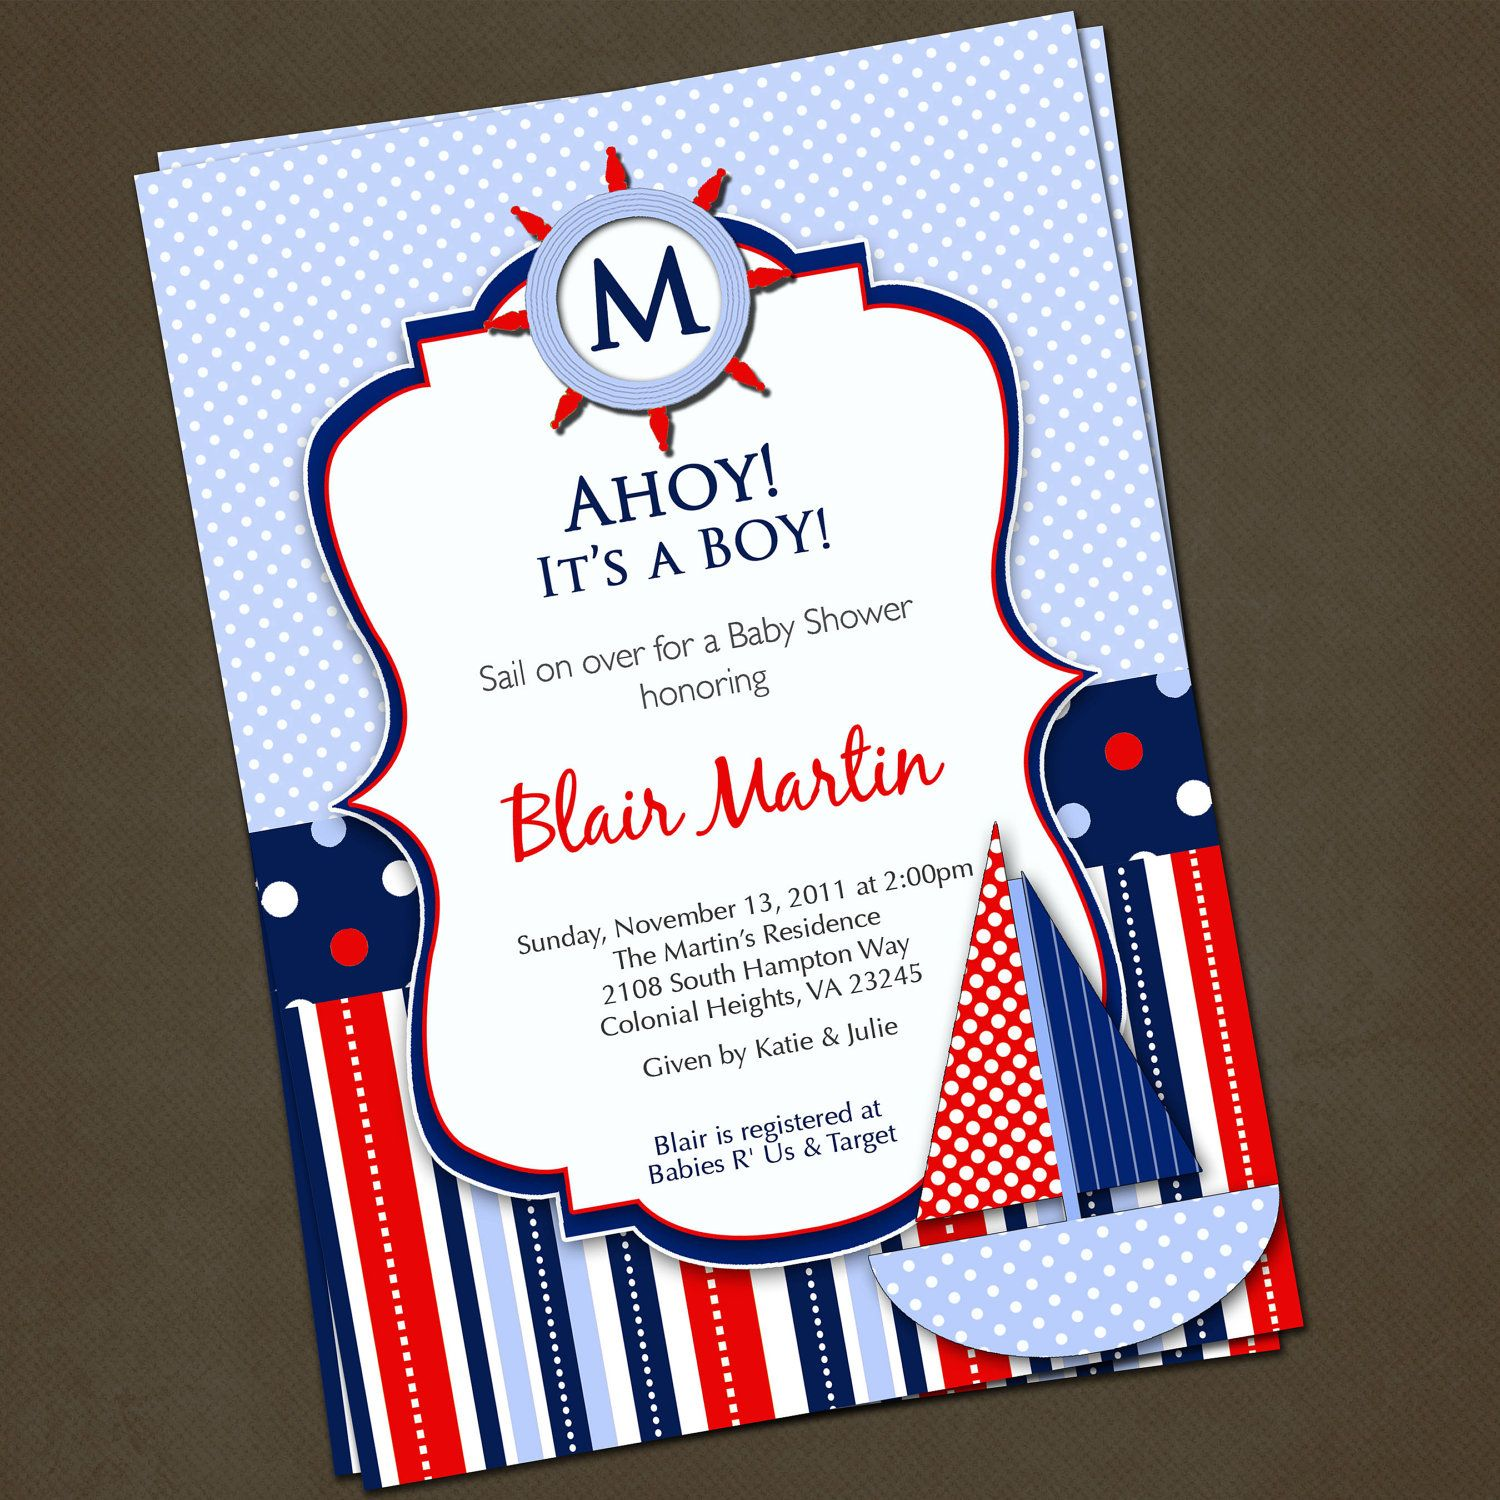 Baby Shower Invitations: Ahoy It\'s A Boy Nautical Baby Shower ...